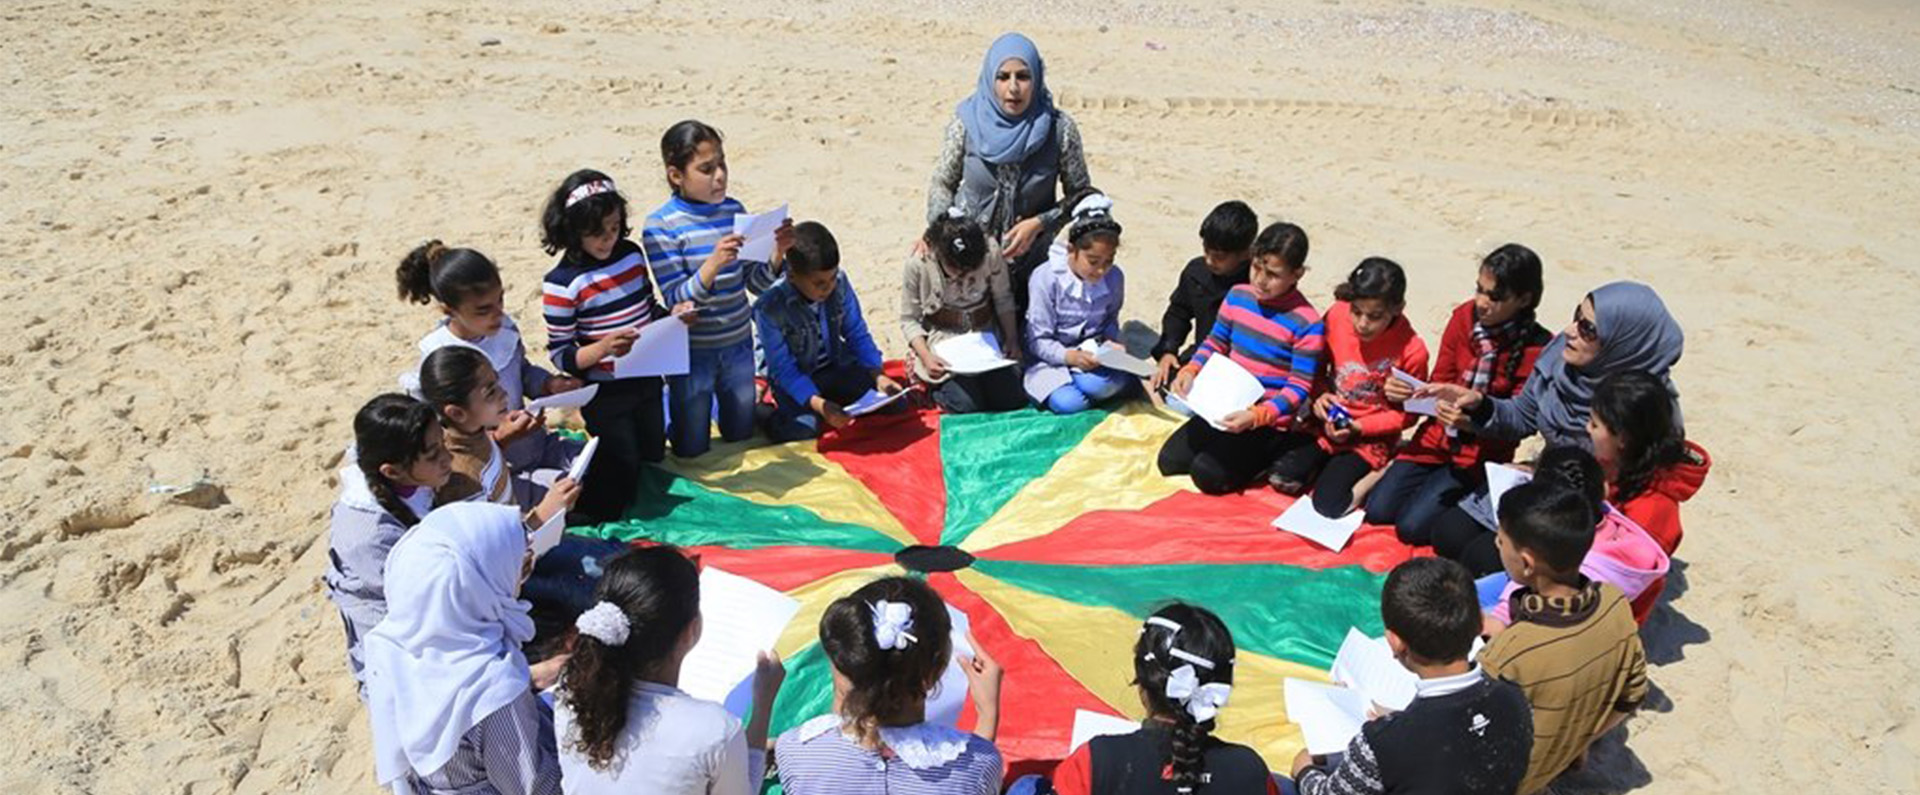 RETHINKING EDUCATION: PALESTINIAN EDUCATION CHALLENGES UNDER OCCUPATION